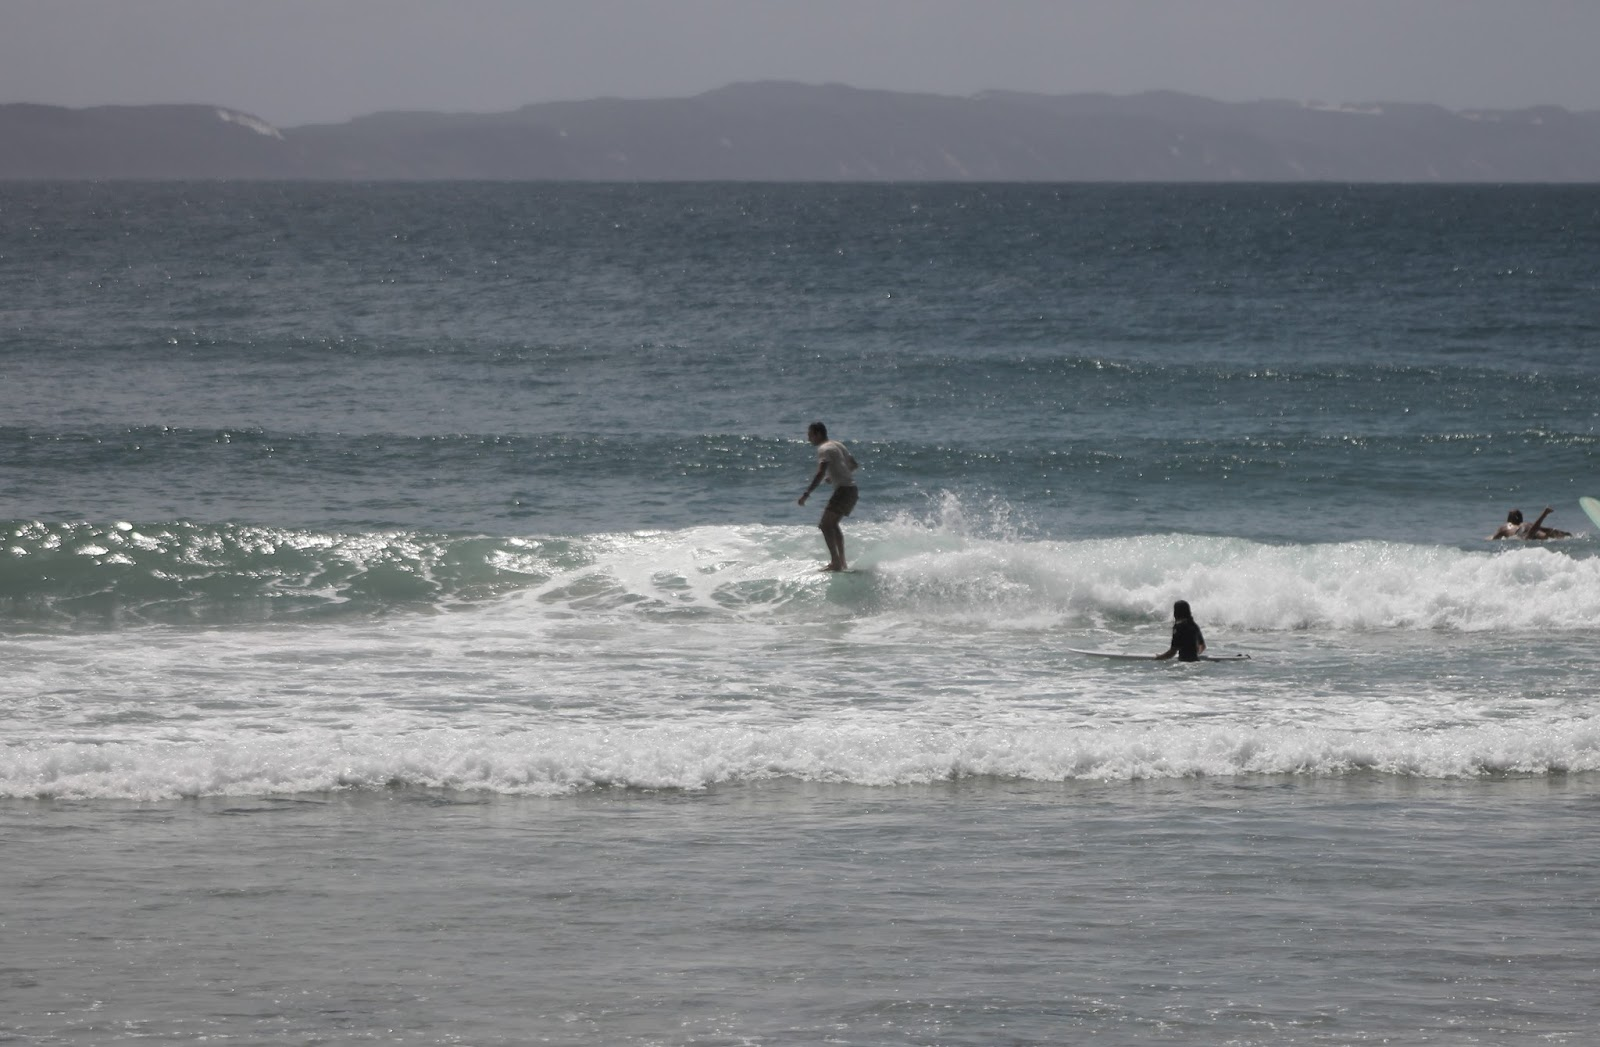 11-03-2016-australia-siebert-surfboards-06